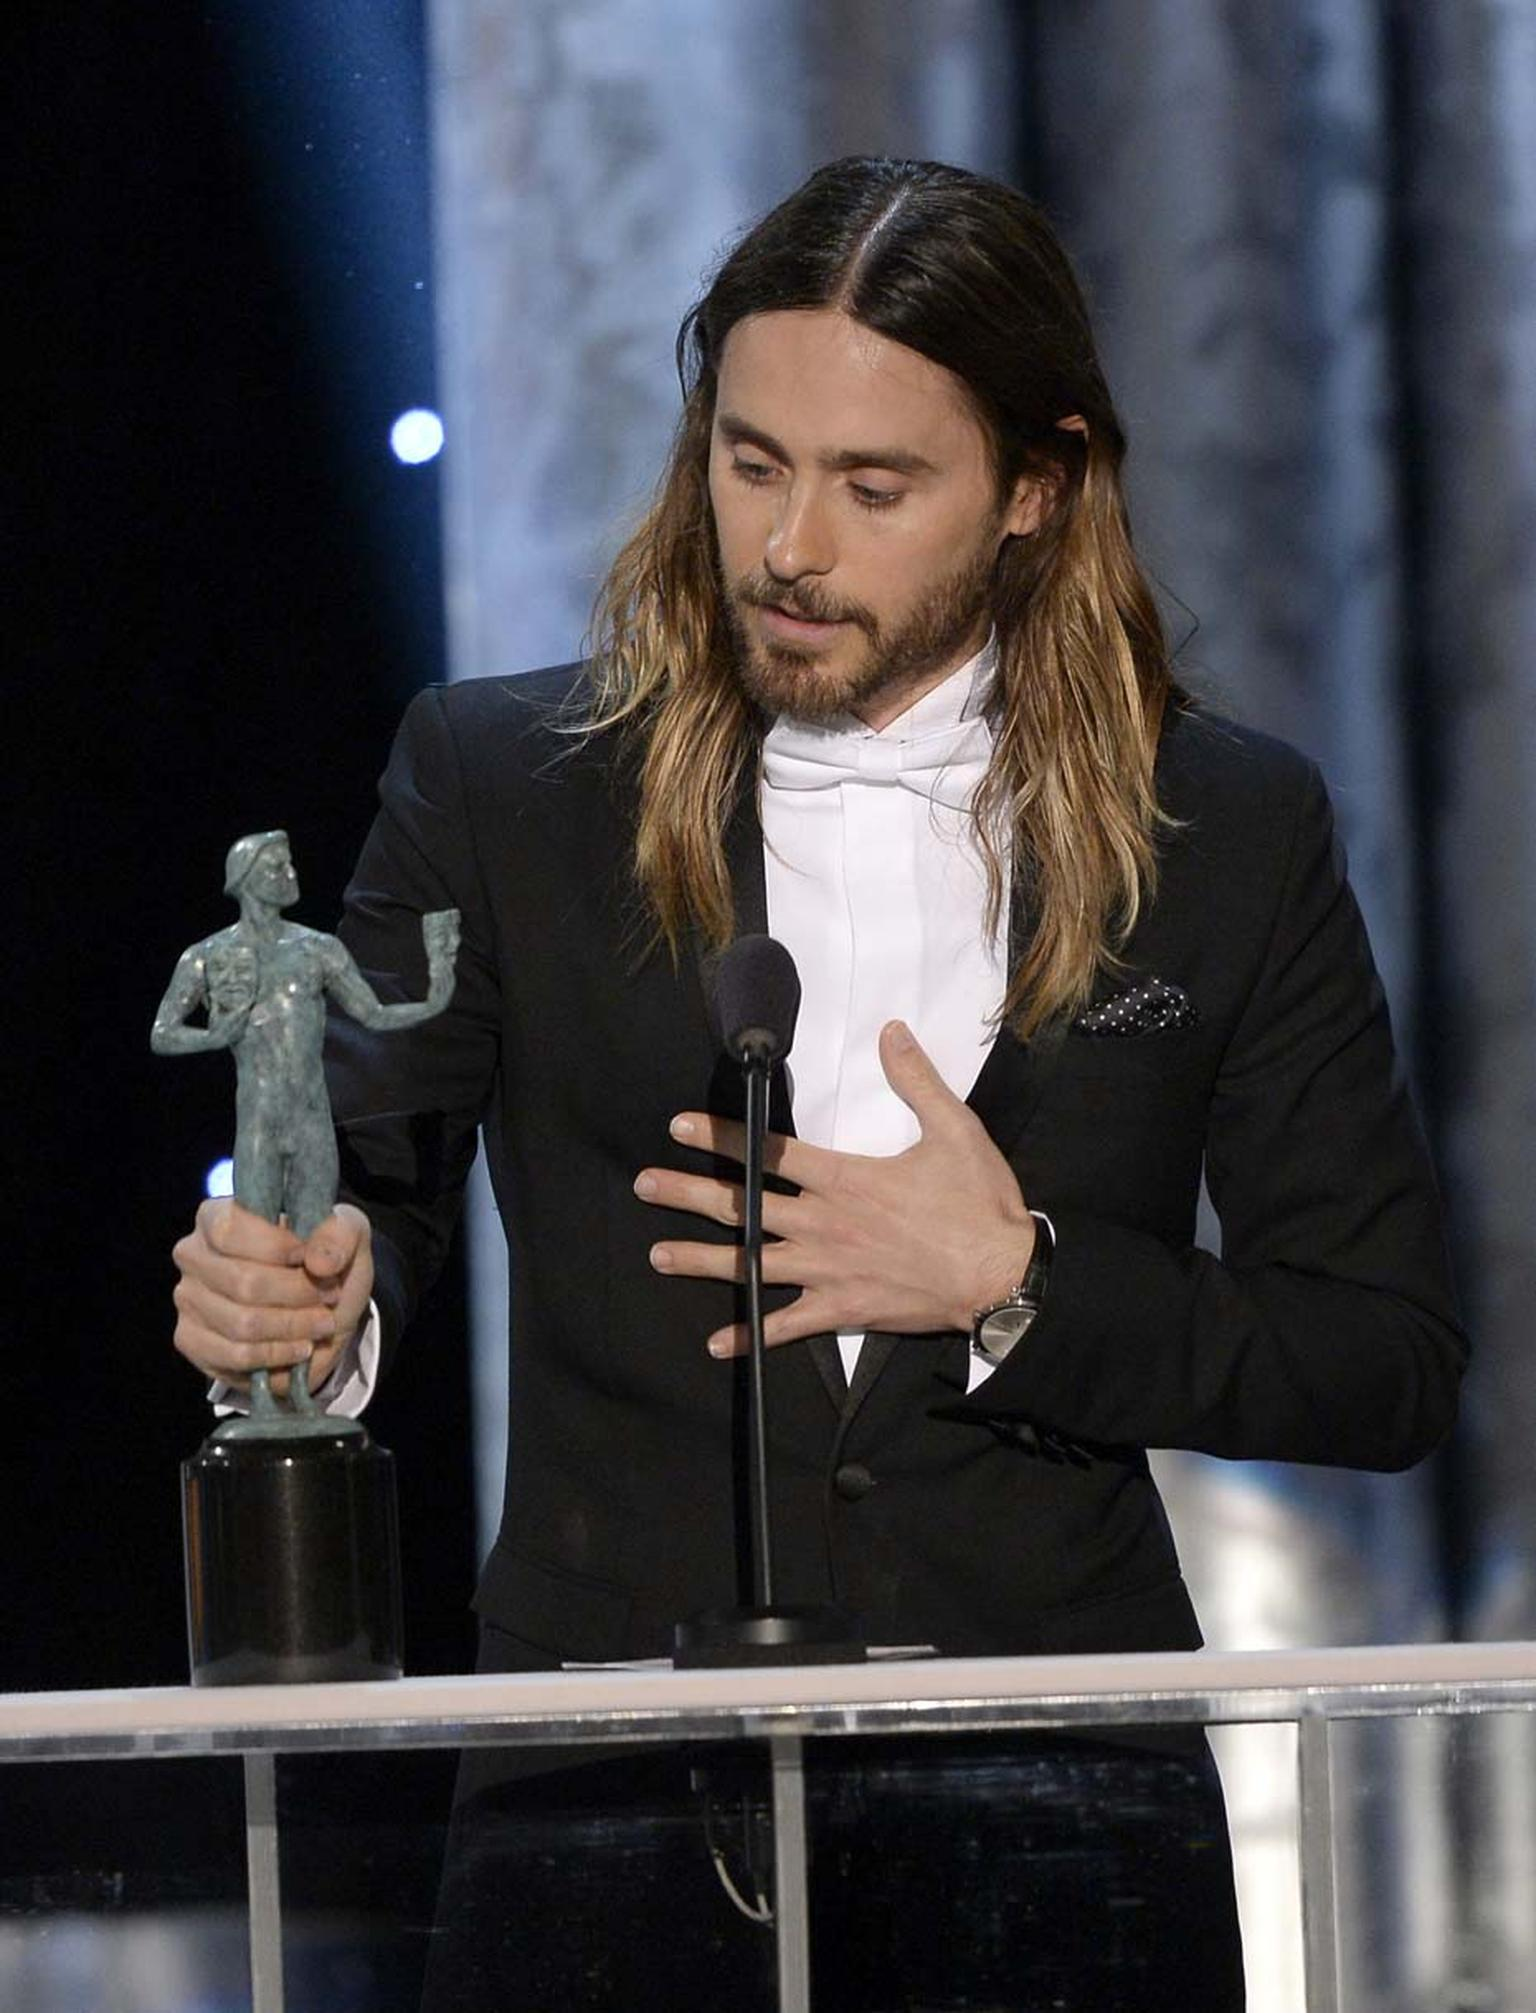 Jared Leto, winner of an award for Outstanding Performance by a Male Actor in a Supporting Role at the SAG Awards 2014, was spotted wearing a Harry Winston Midnight timepiece